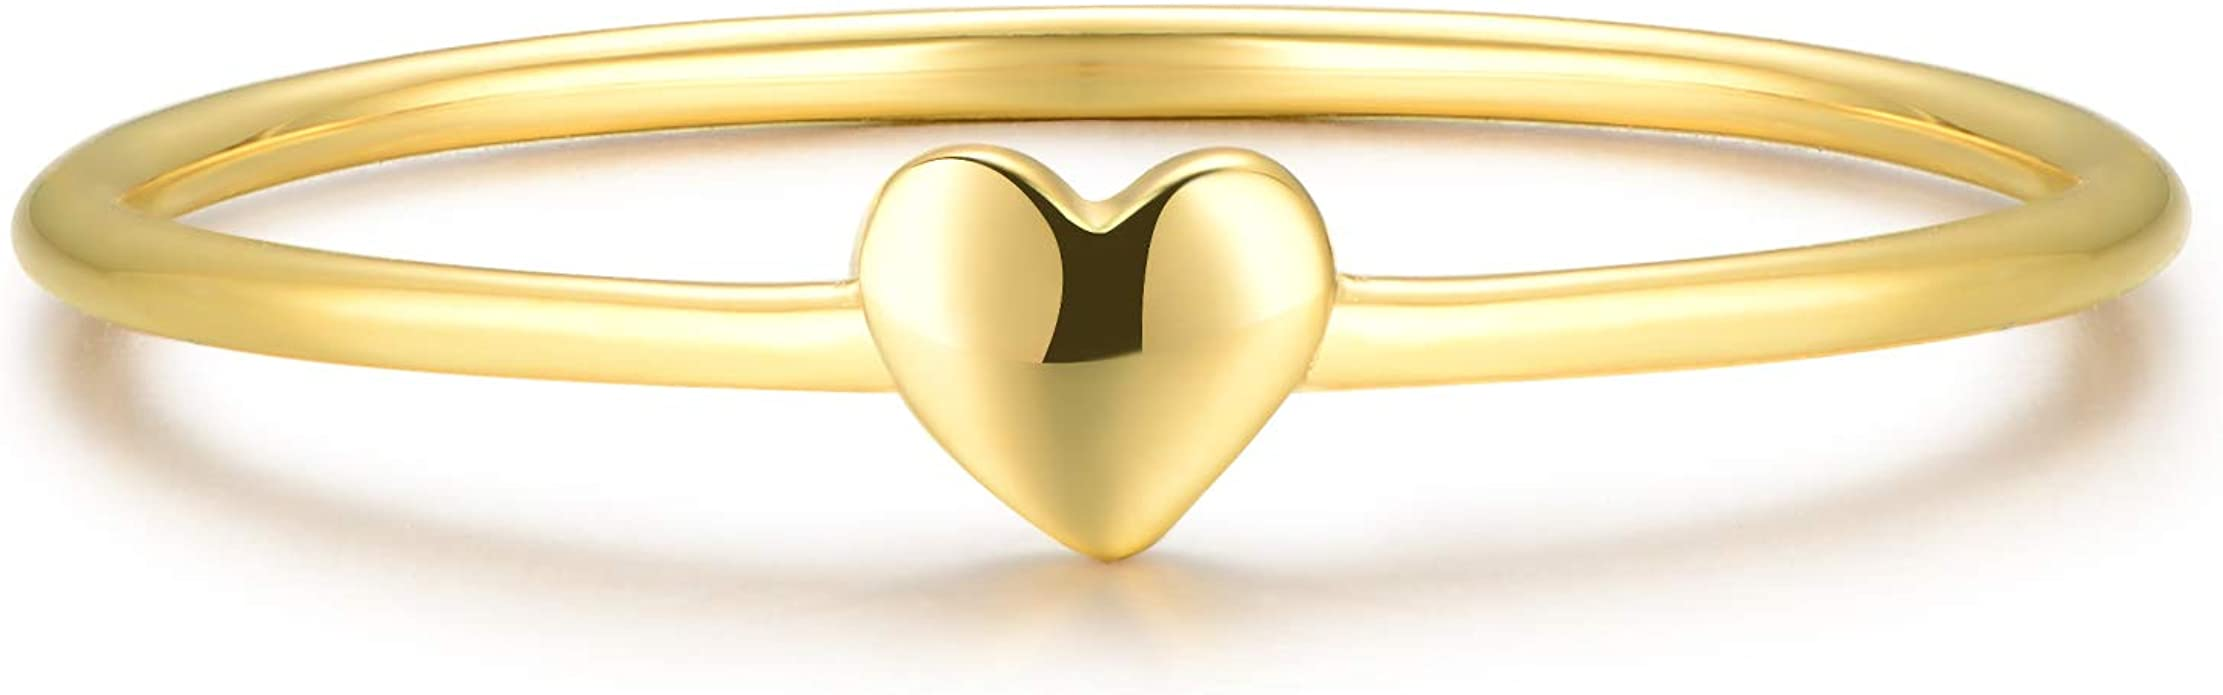 925 Sterling Silver//18K Yellow Gold Filled Two Tone Open Heart Love Band Ring